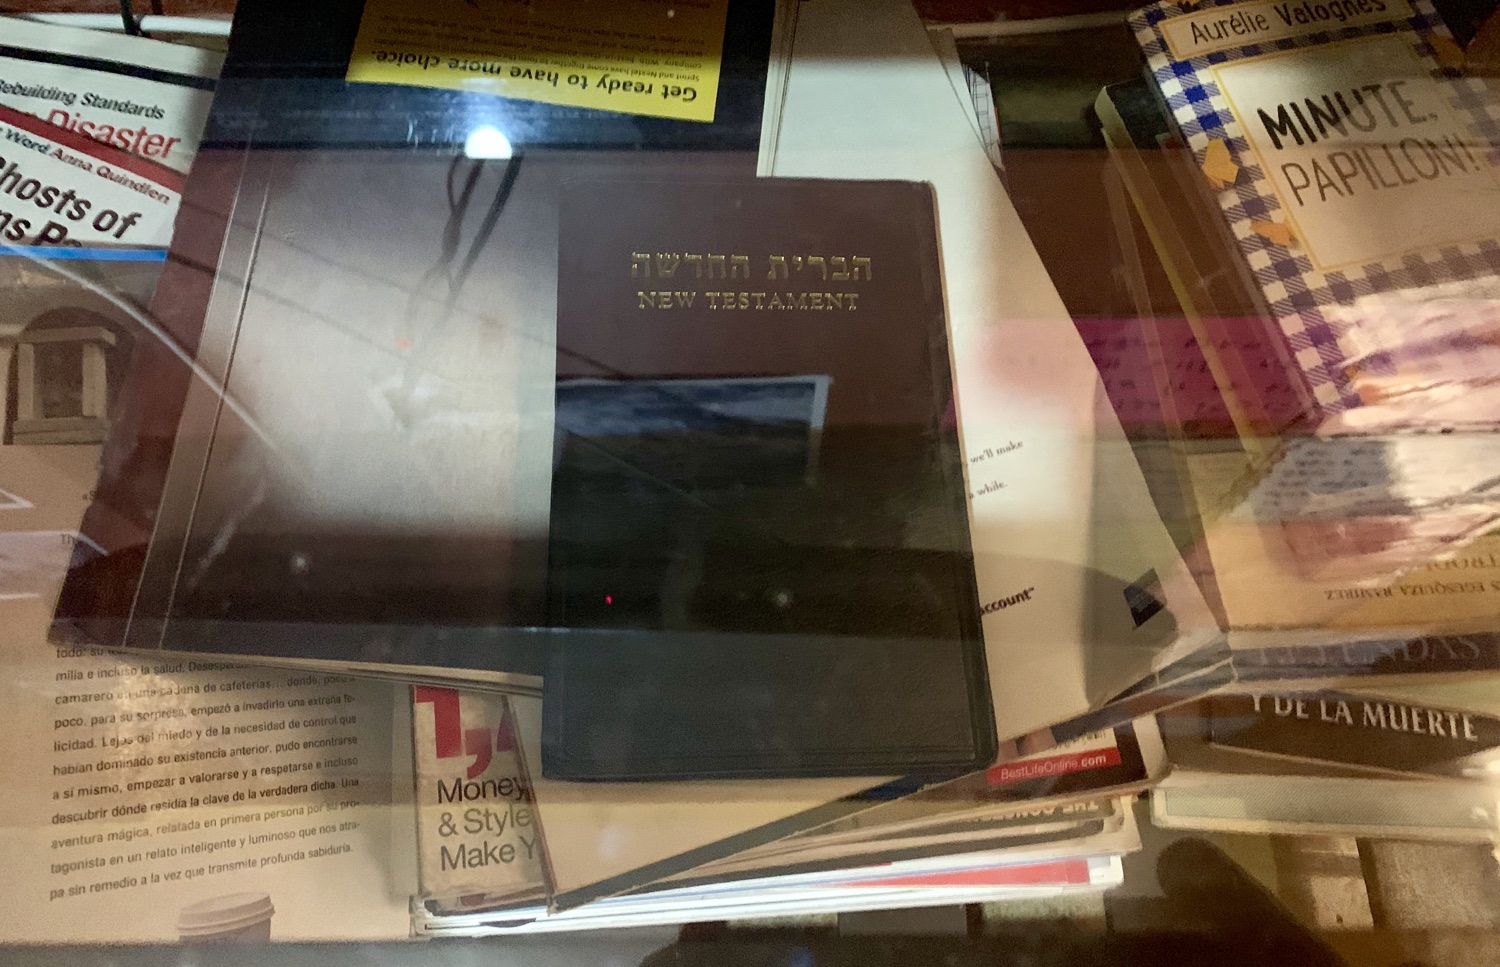 An unsaved Gentile cared enough about this Hebrew New Testament left on the bookshelf at his hostel last year that he brought it along to place with the reading material at his new guesthouse.